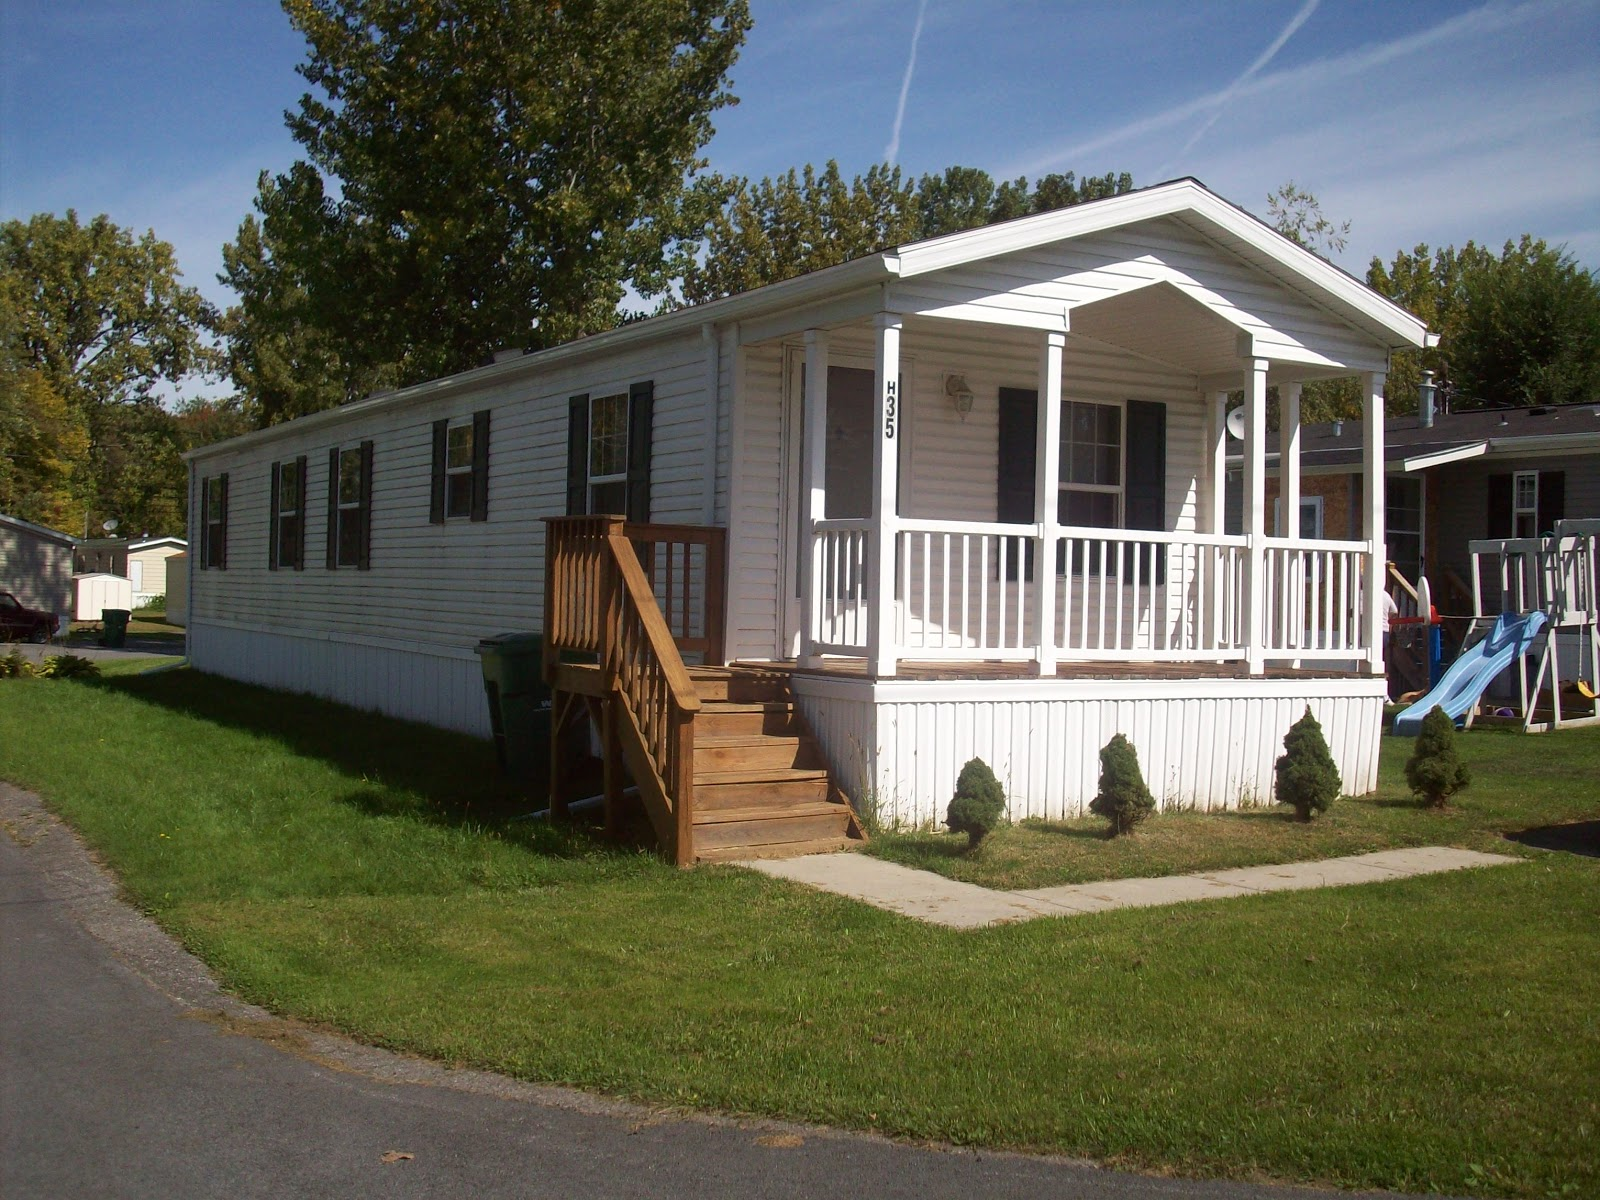 Is It Worth Buying A Manufactured Home?